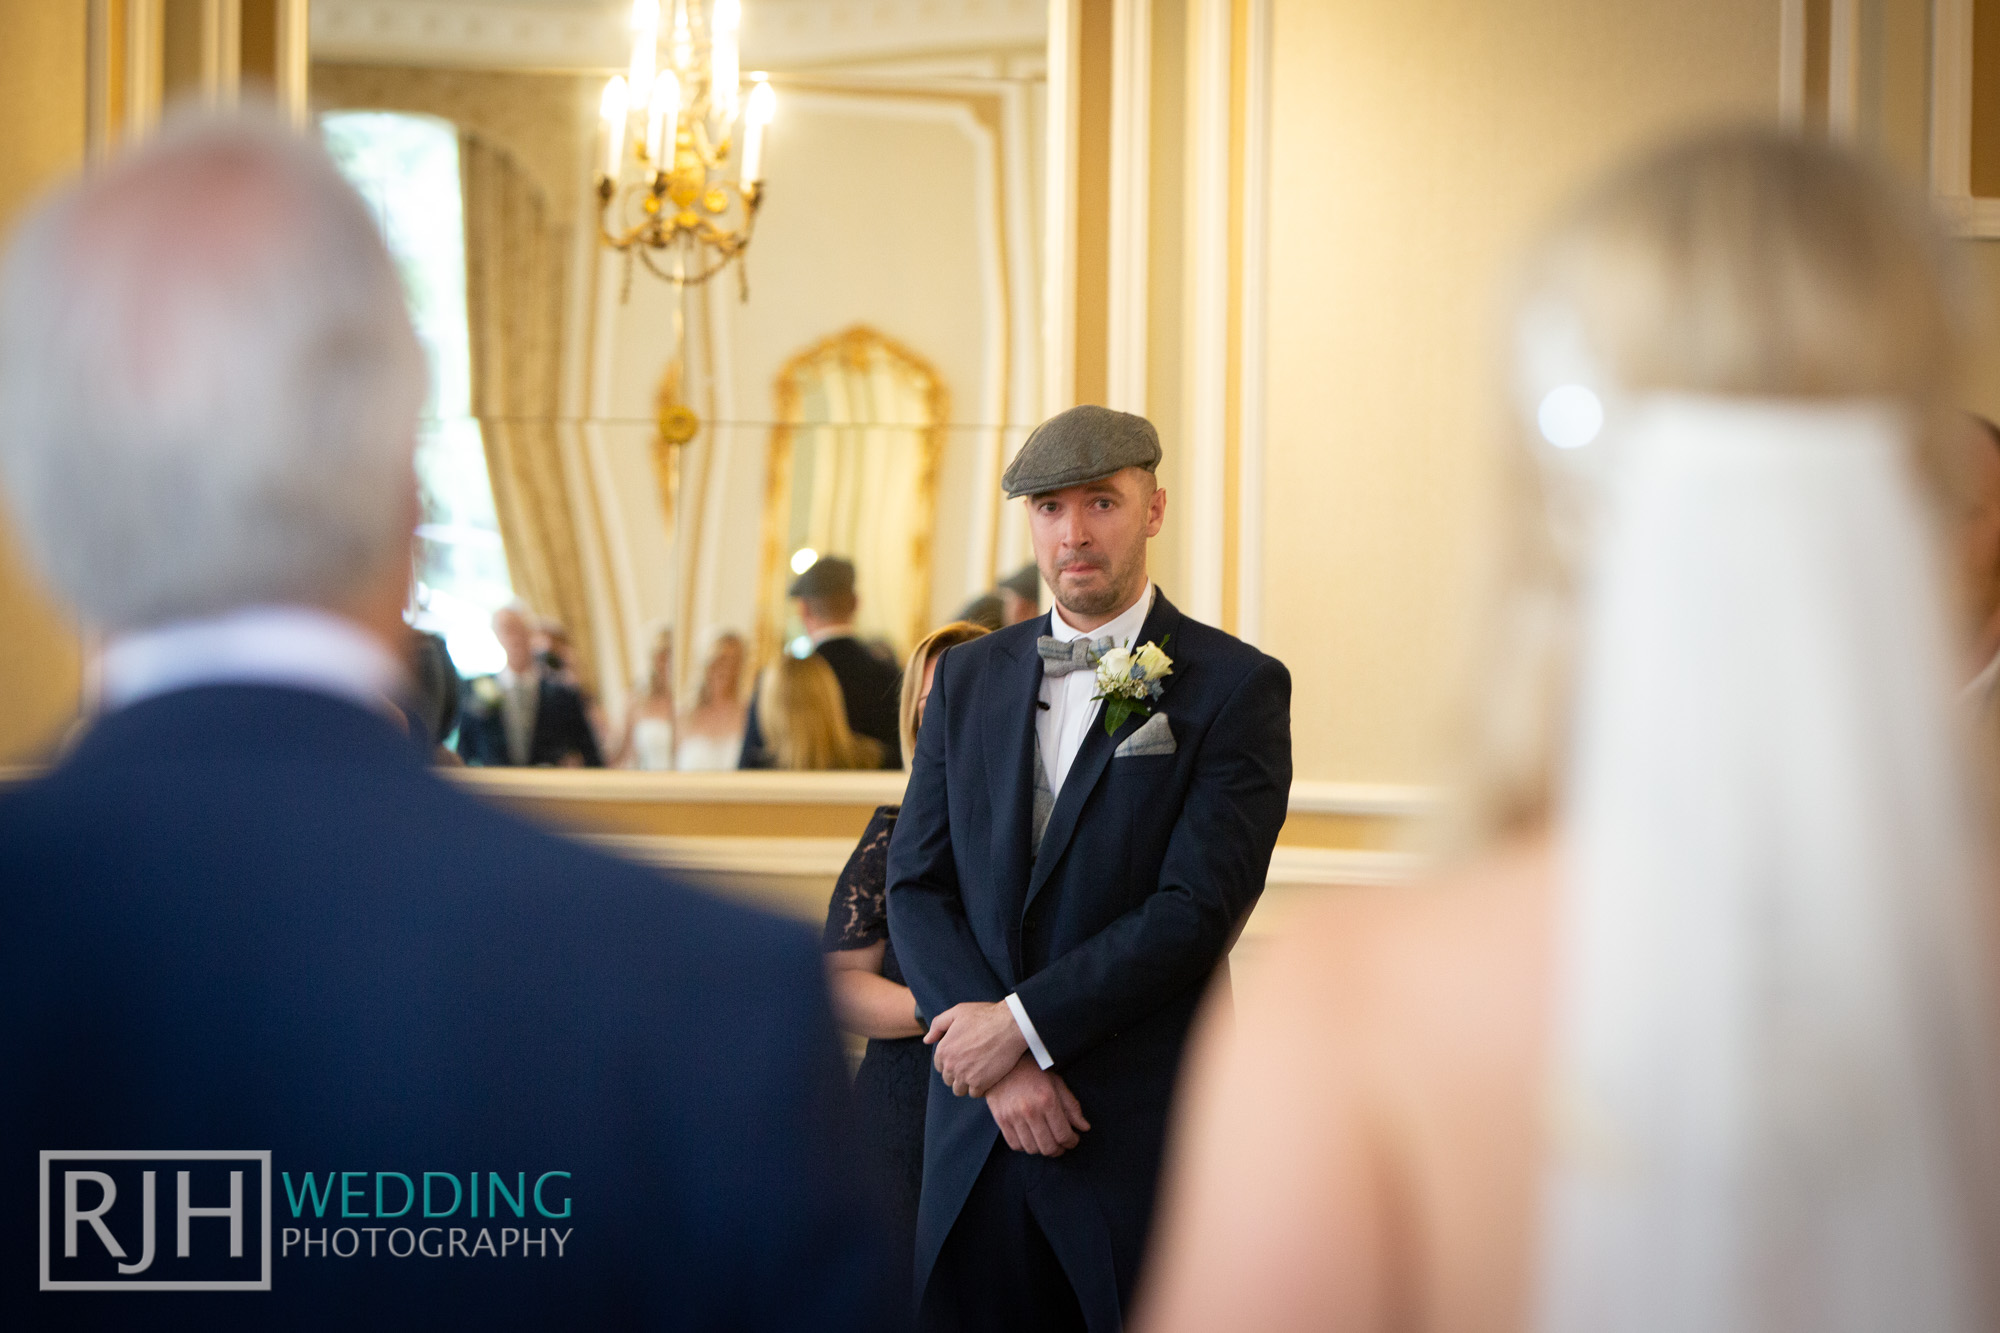 Ringwwod Hall Wedding Photography_Lacey Wedding Preview_024_ATP_2750.jpg